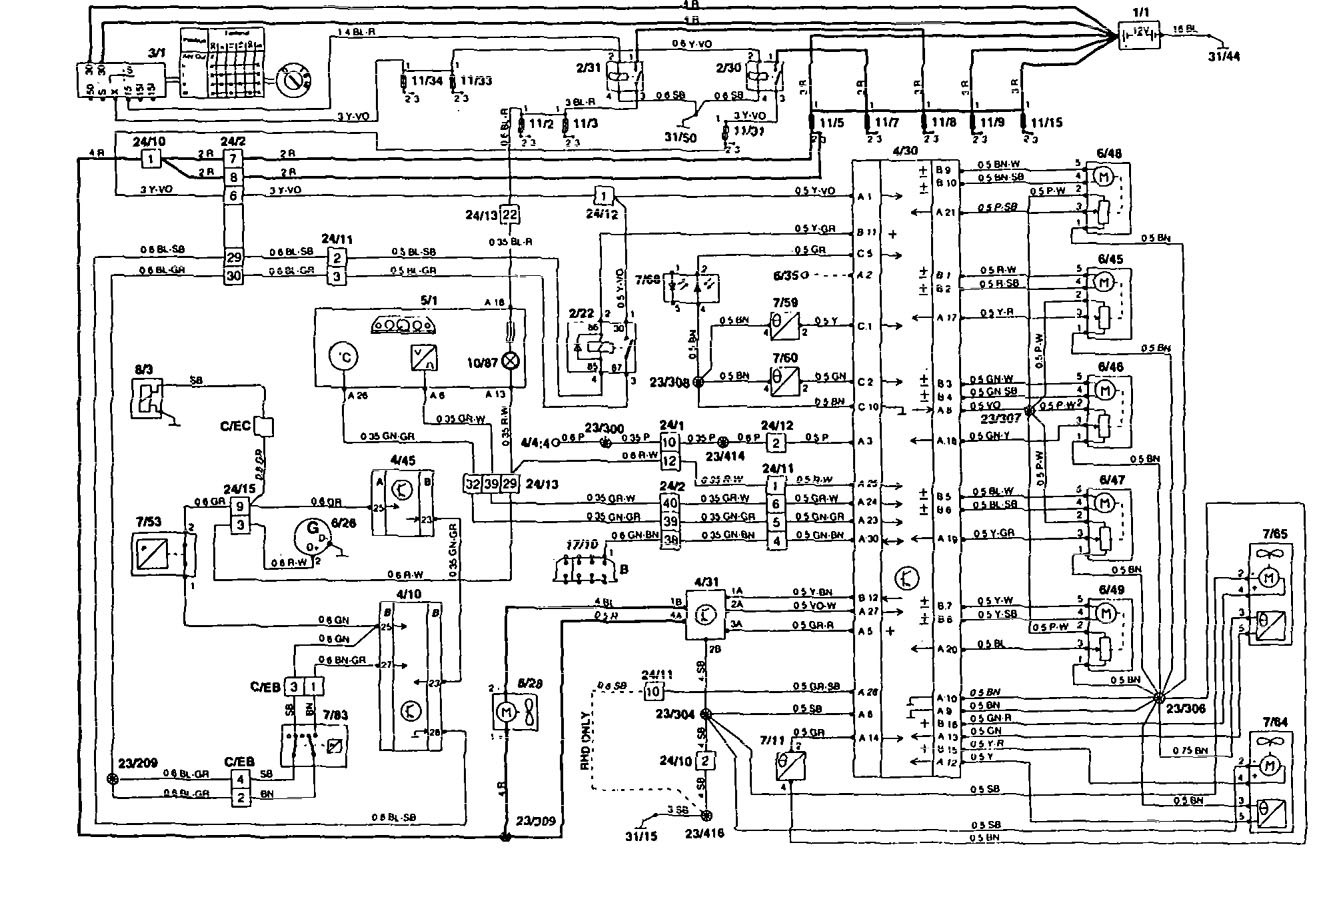 volvo 850 wiring diagram hvac controls 1 1995 volvo 850 (1995) wiring diagrams hvac controls carknowledge Wiring Harness Diagram at readyjetset.co